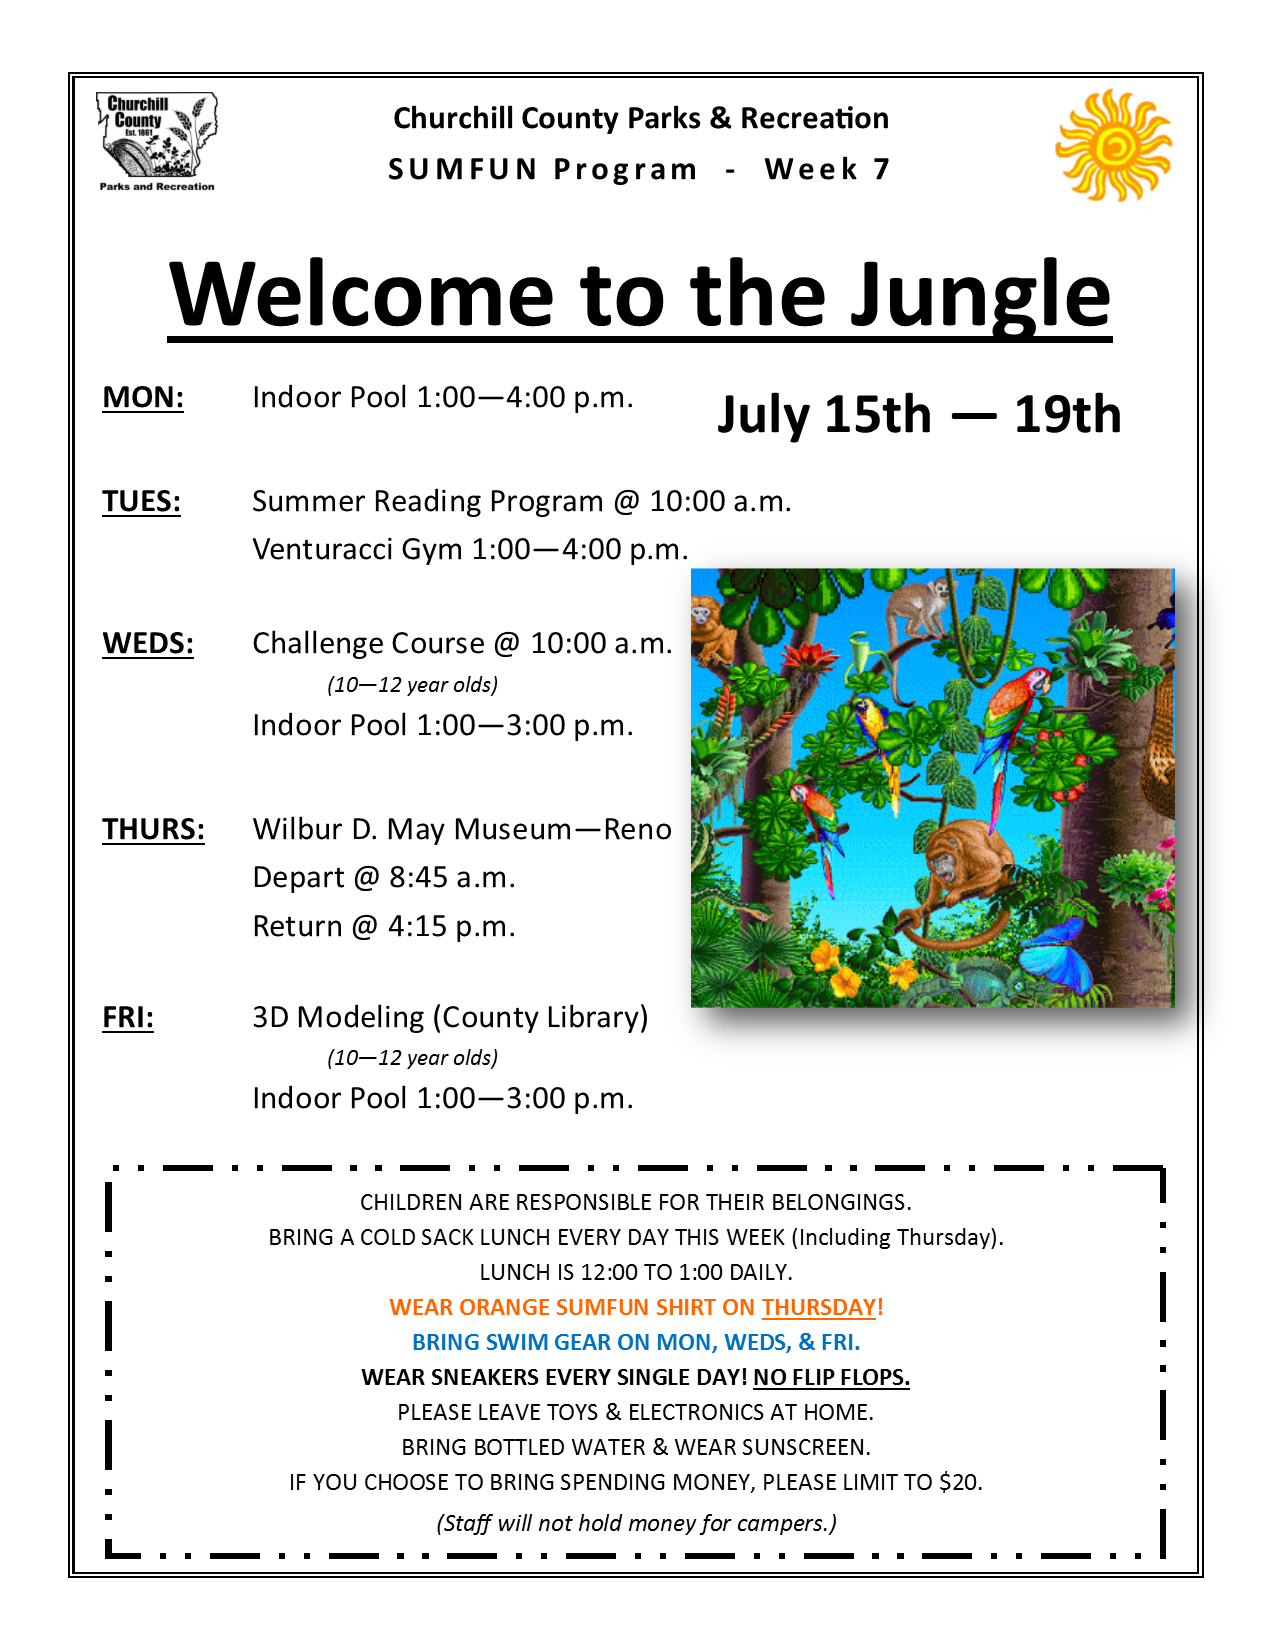 SUMFUN 2019 Flyer for Week 7